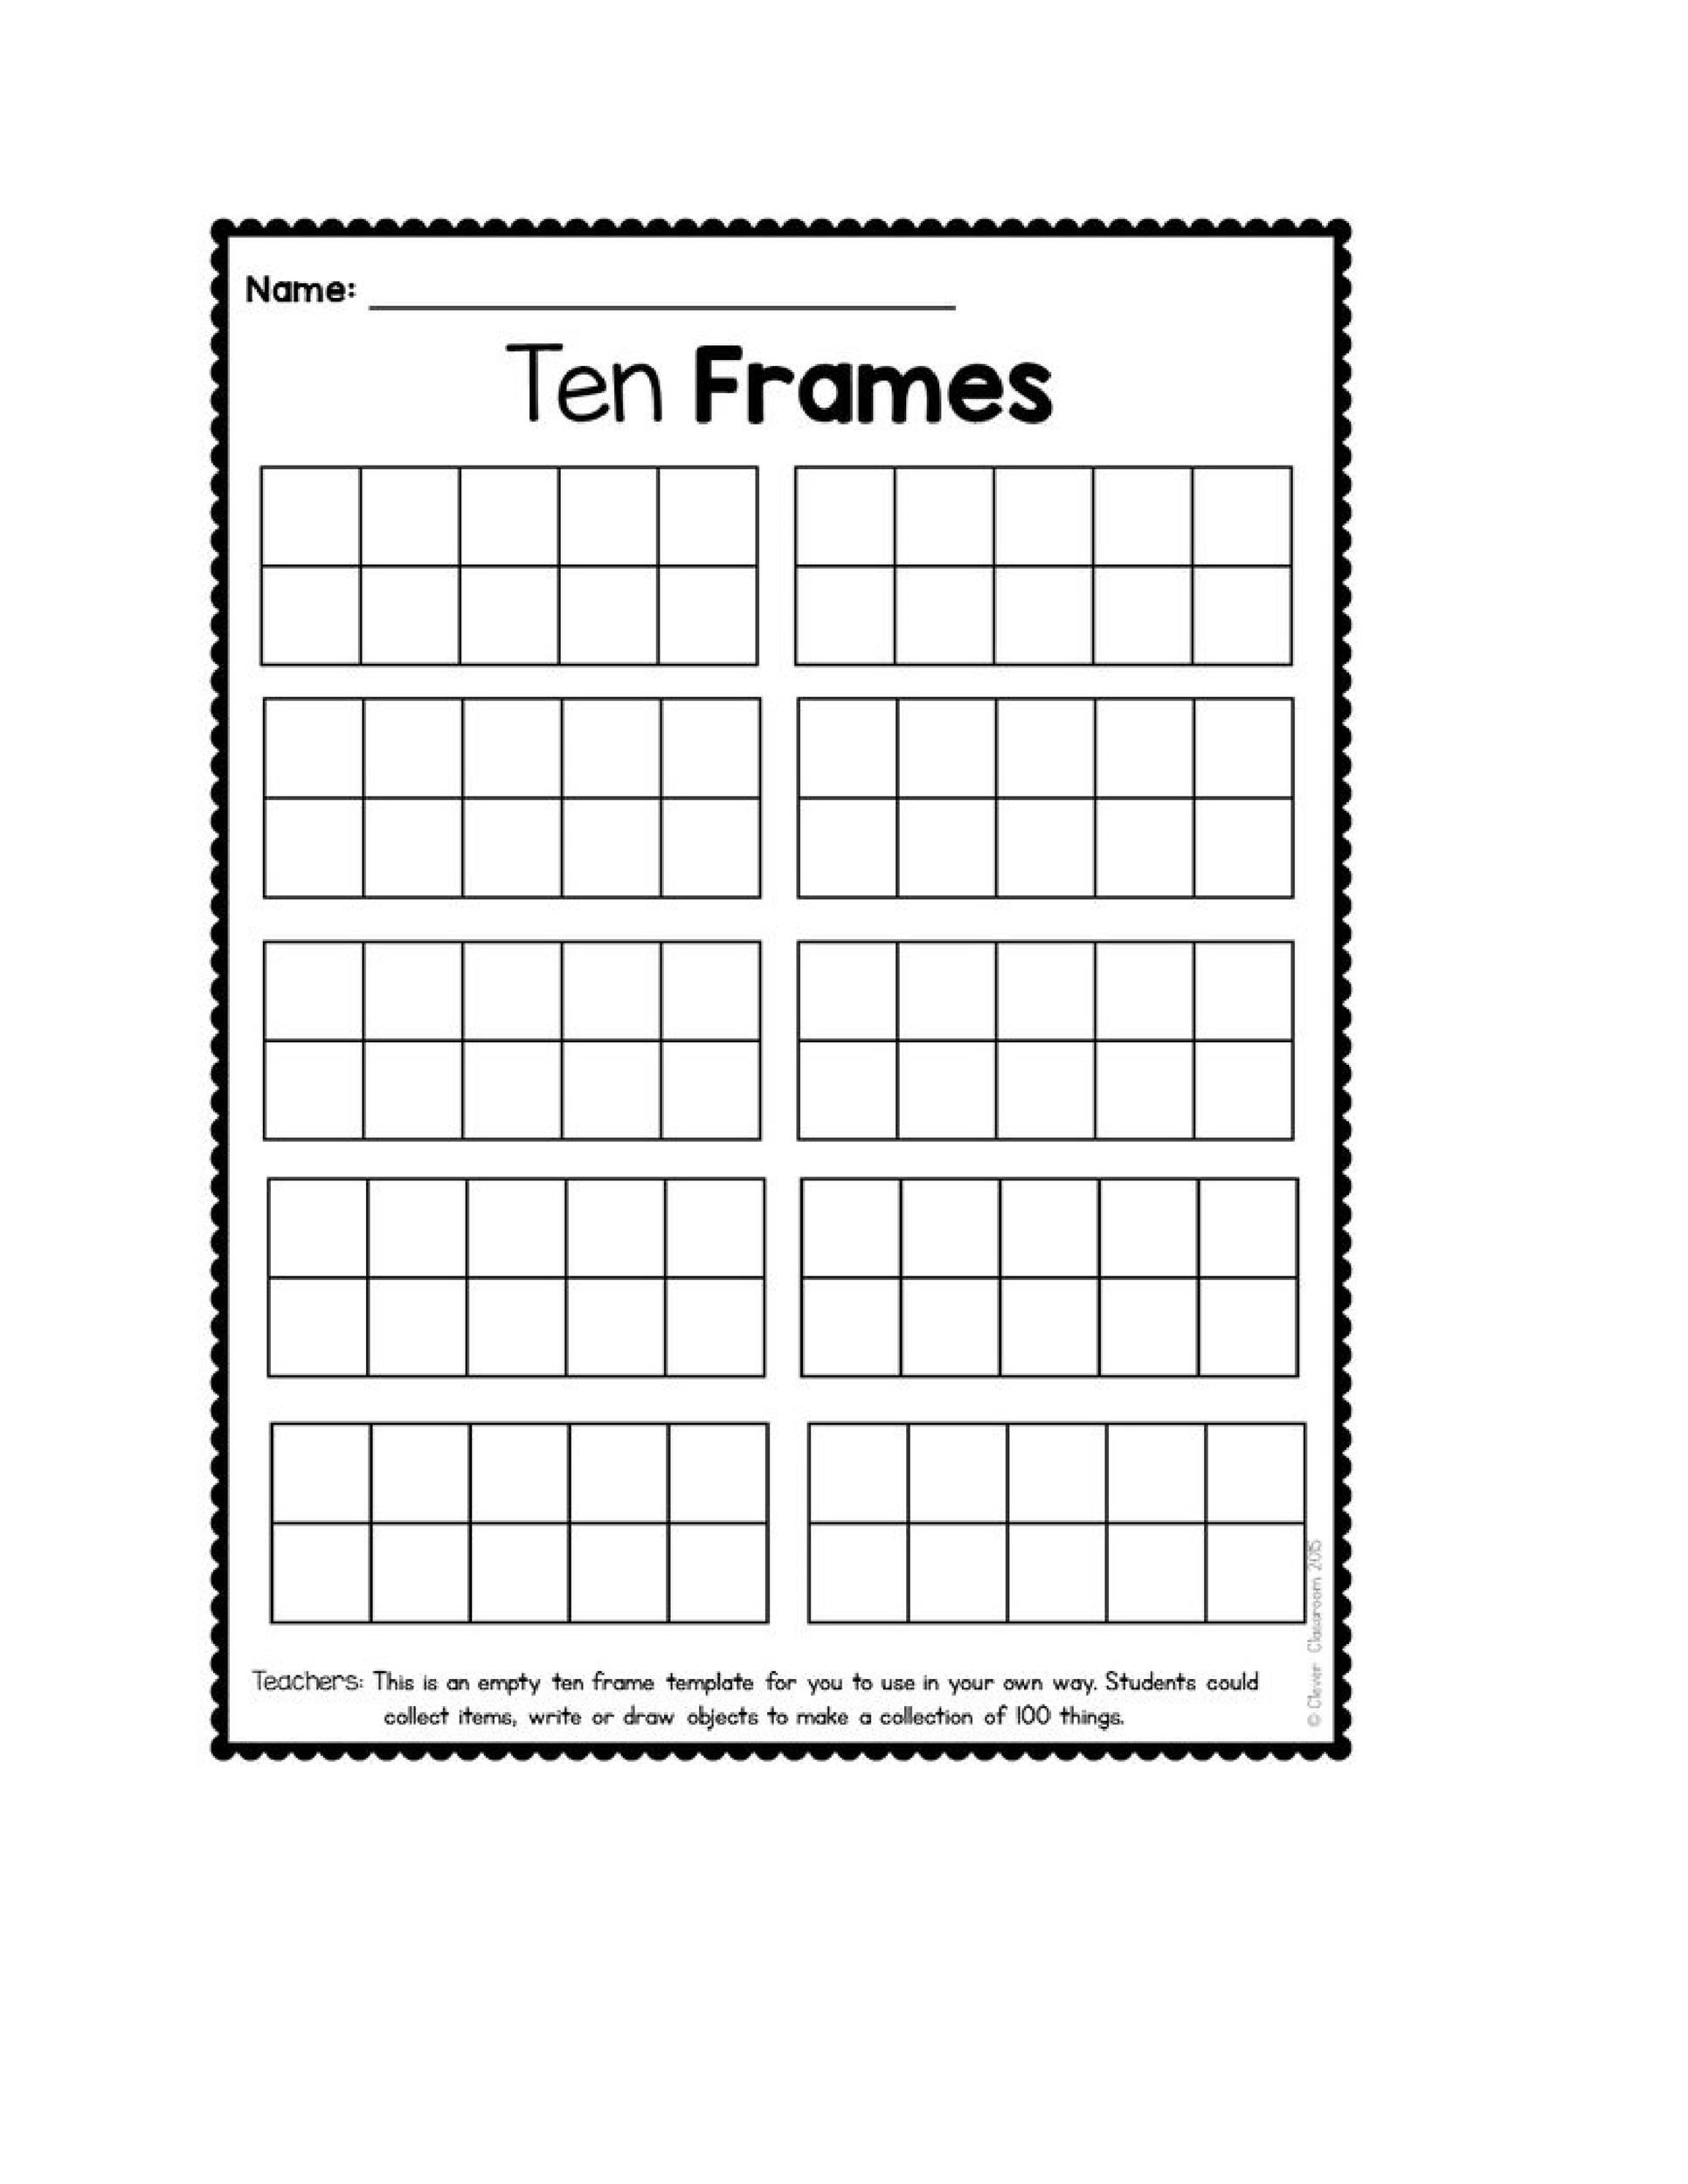 picture about Ten Frame Printable titled 36 Printable 10 Body Templates (Free of charge) ᐅ Template Lab